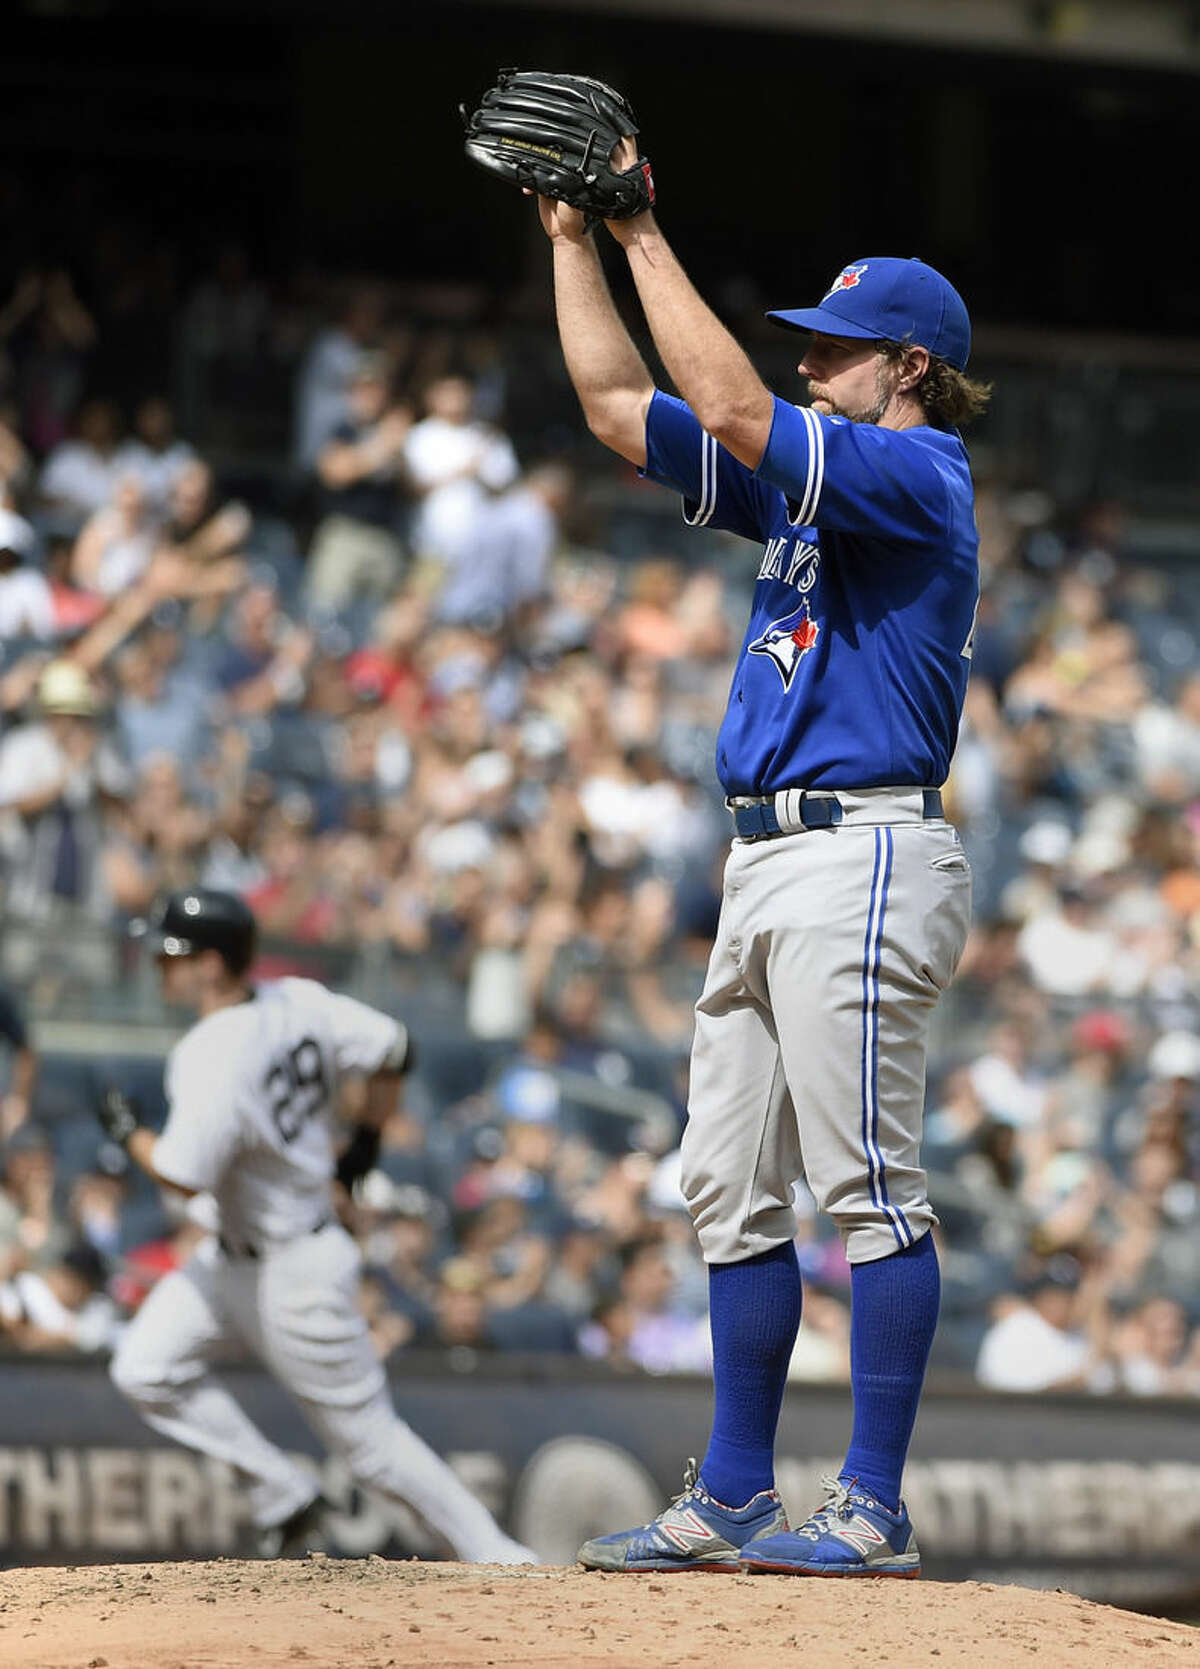 Toronto Blue Jays starting pitcher R.A. Dickey, right, reacts on the mound as New York Yankees' Dustin Ackley rounds third base after hitting a two-run home run in the fourth inning of a baseball game at Yankee Stadium, Sunday, Sept. 13, 2015, in New York. (AP Photo/Kathy Kmonicek)